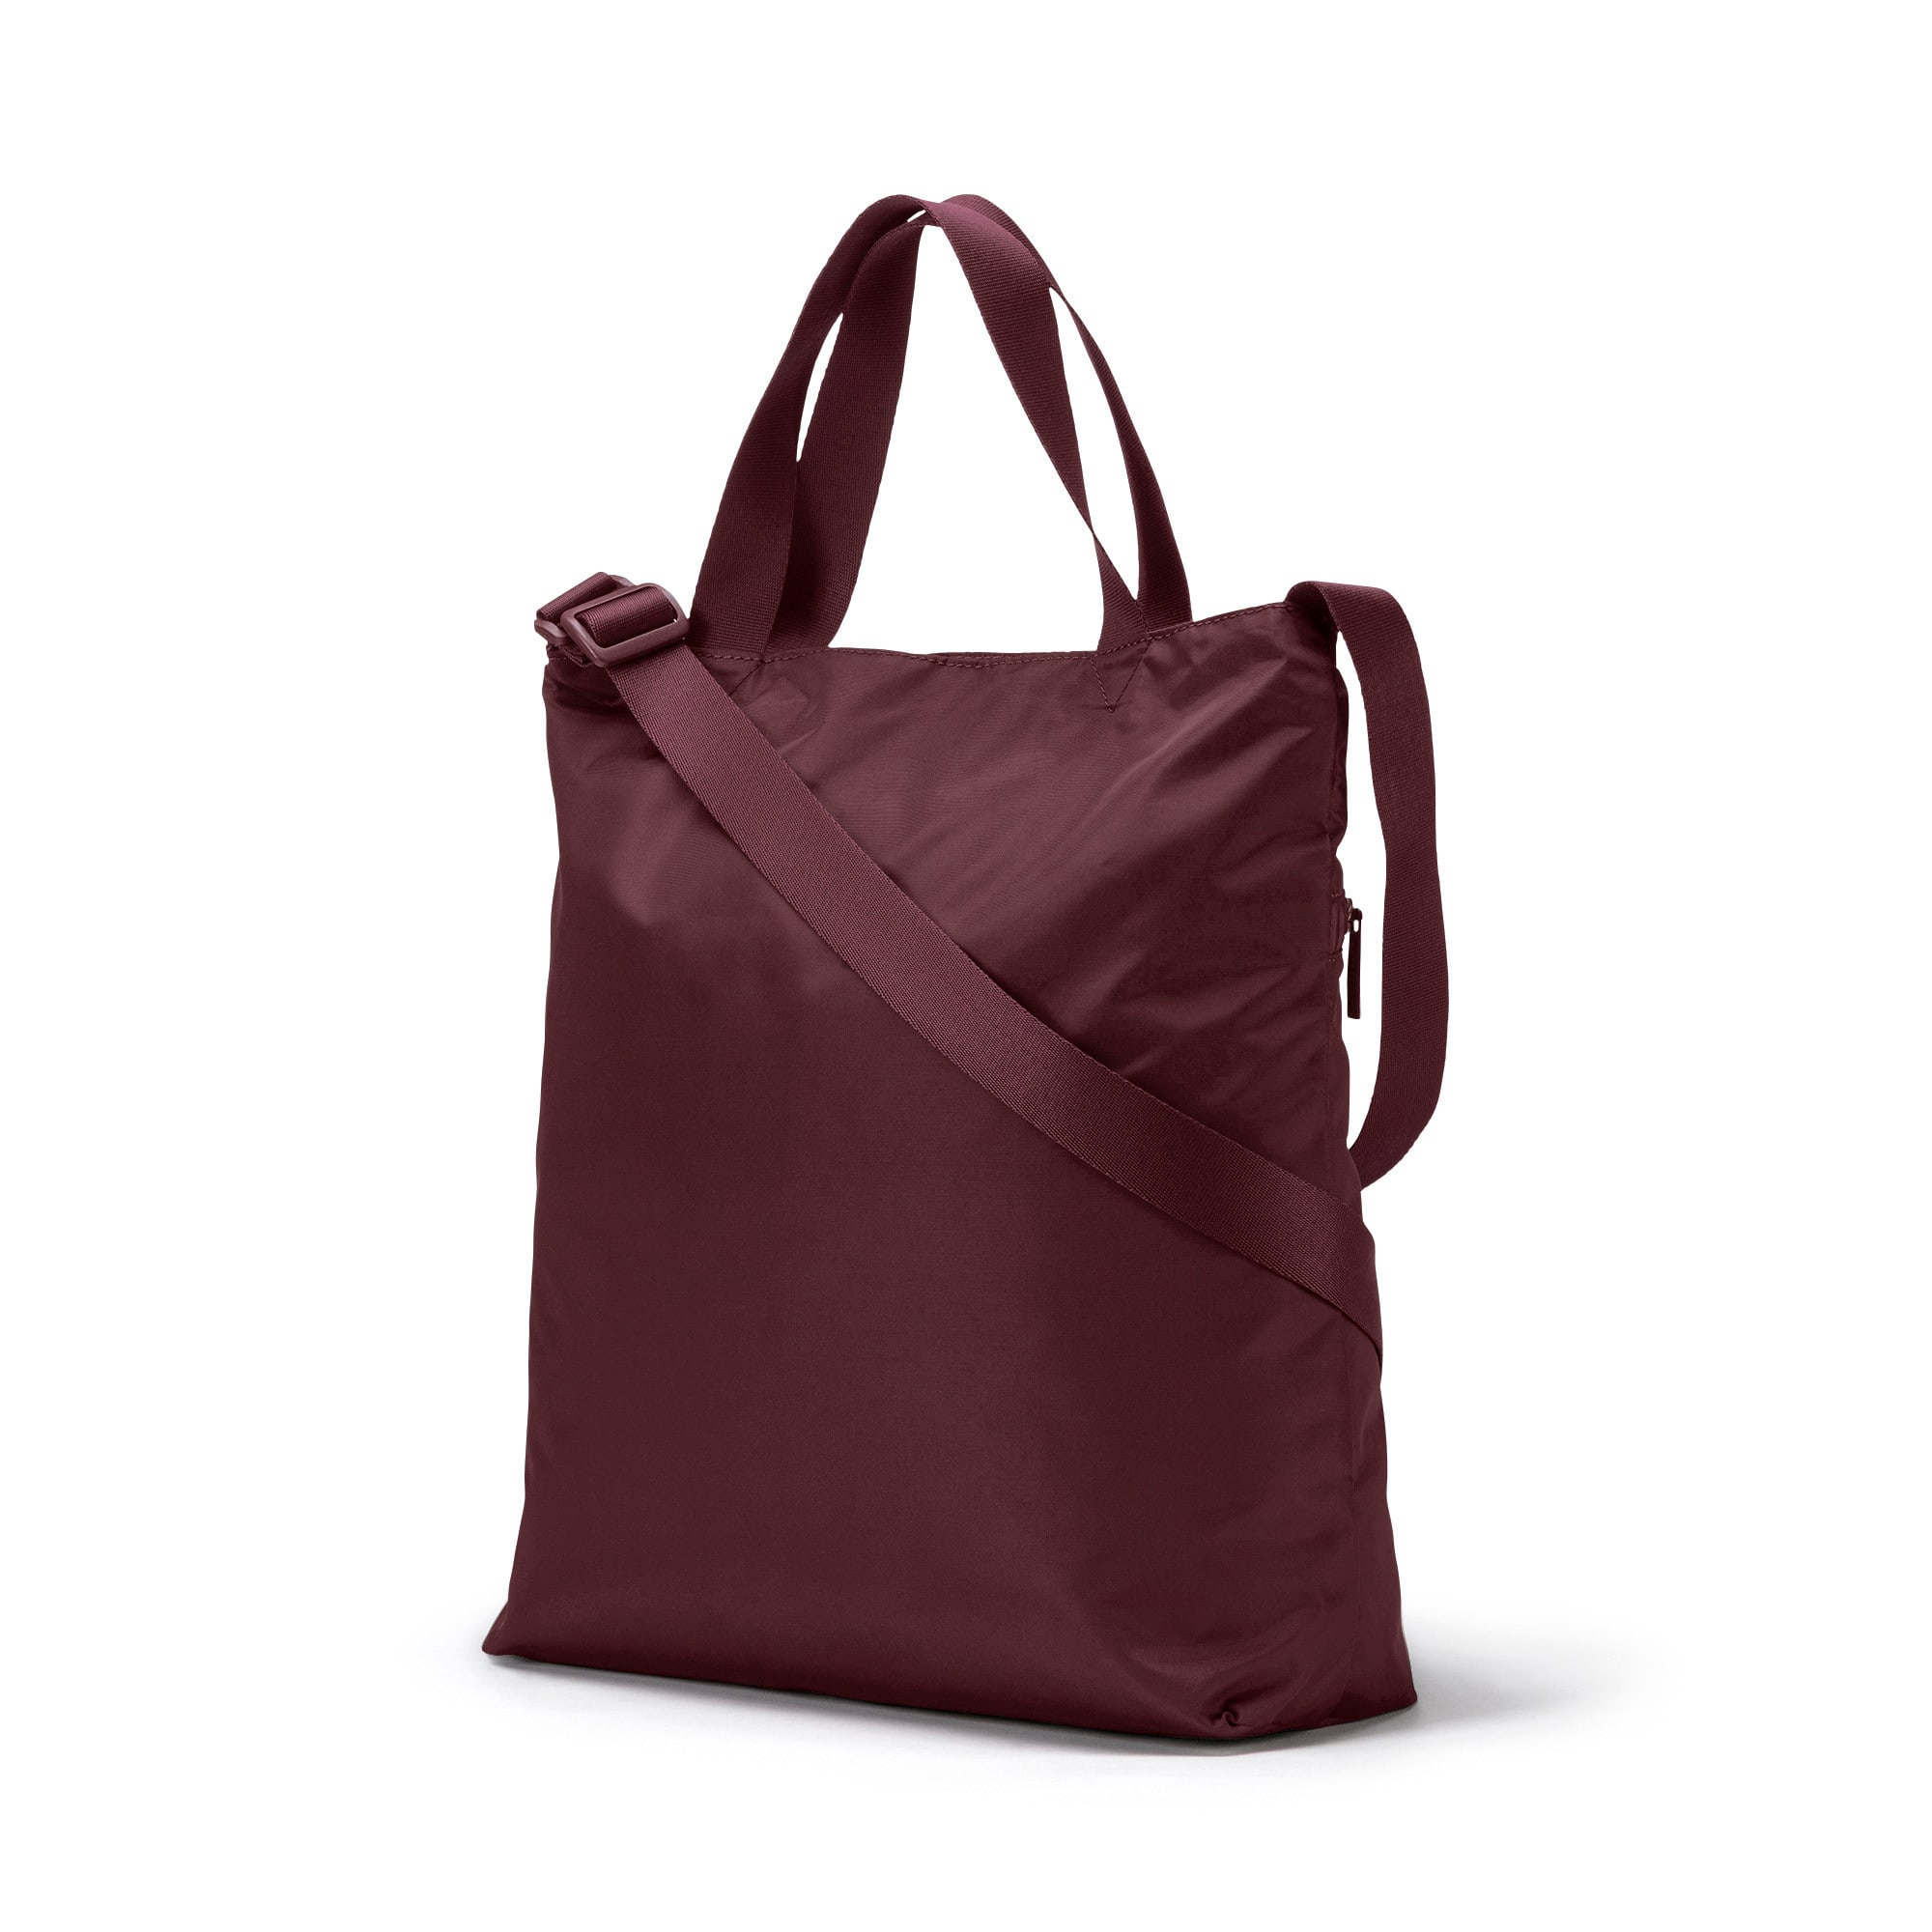 Thumbnail 3 of Seasonal Women's Shopper, Vineyard Wine-Rose gold, medium-IND